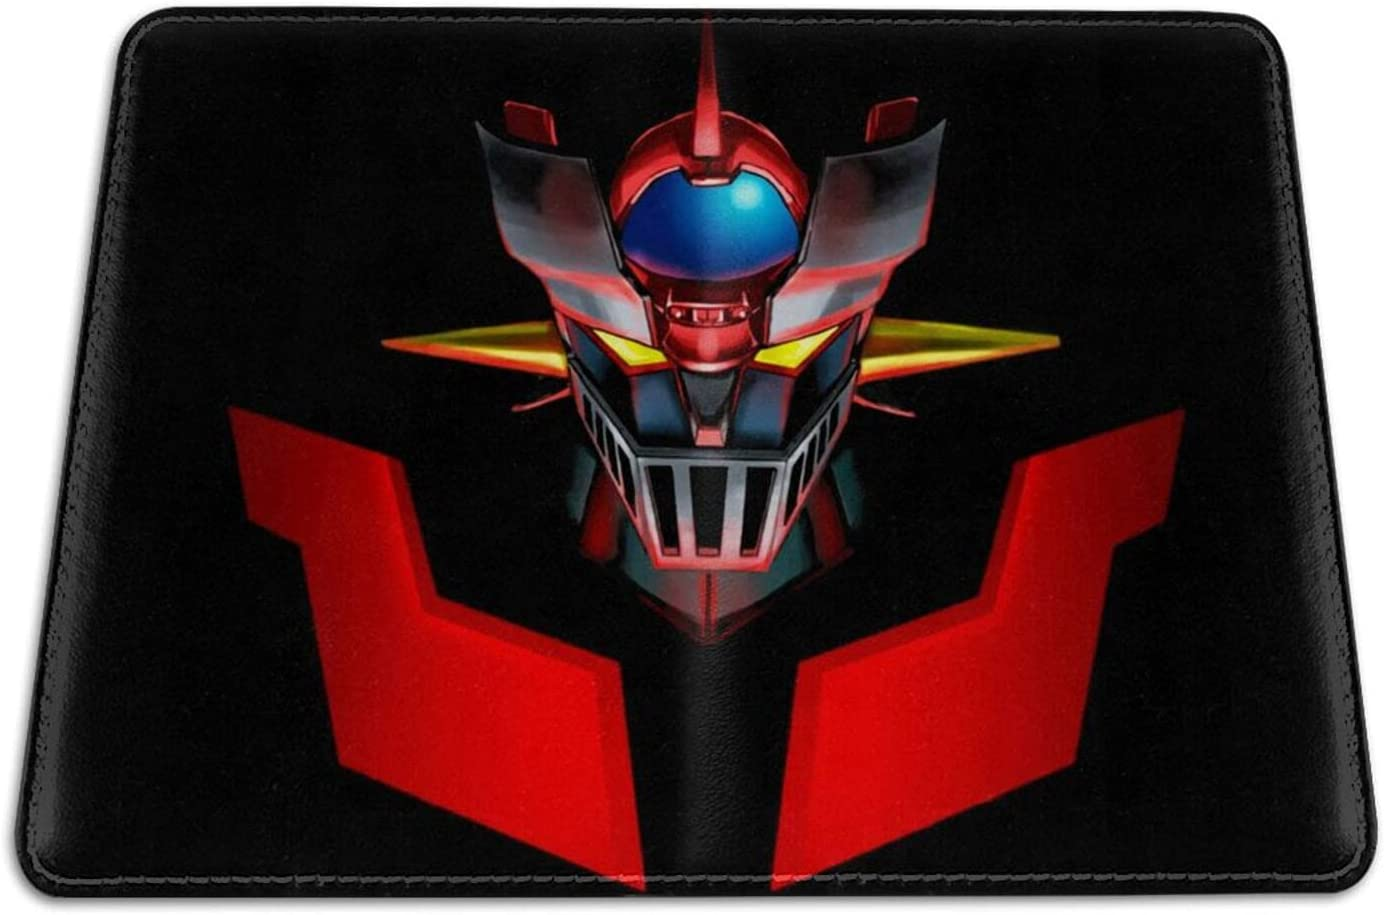 Challenge the lowest price of Japan ☆ Mazinger Z Anime Passport Cover Daily bargain sale Holder Slots Wallet S Card With